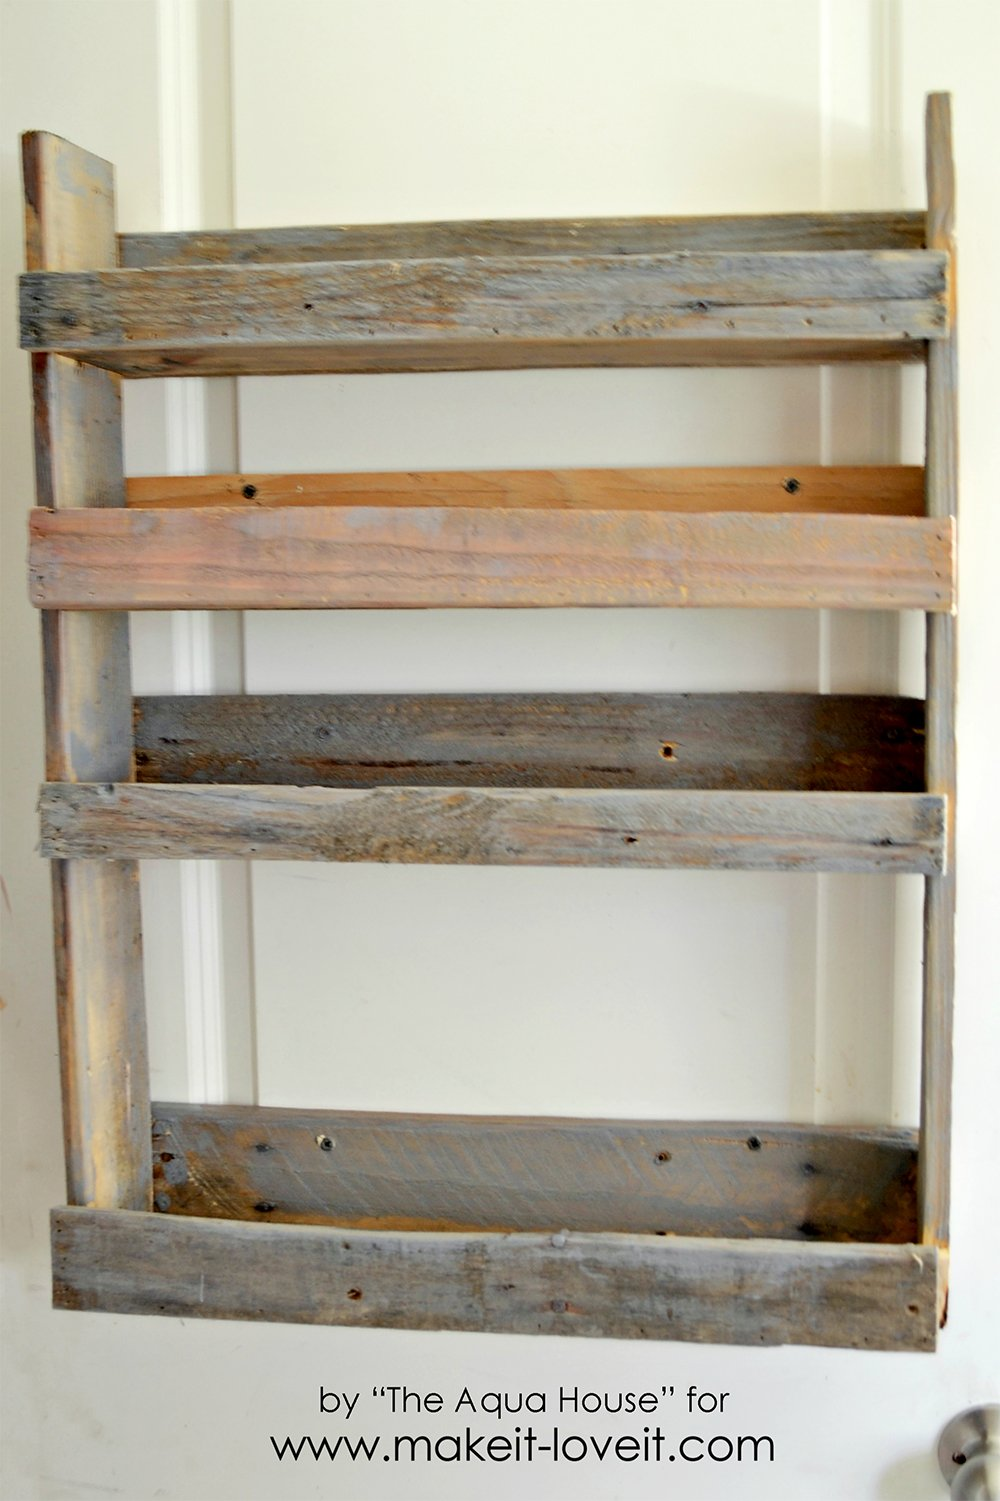 DIY Pallet Spice Rack | Make It and Love It